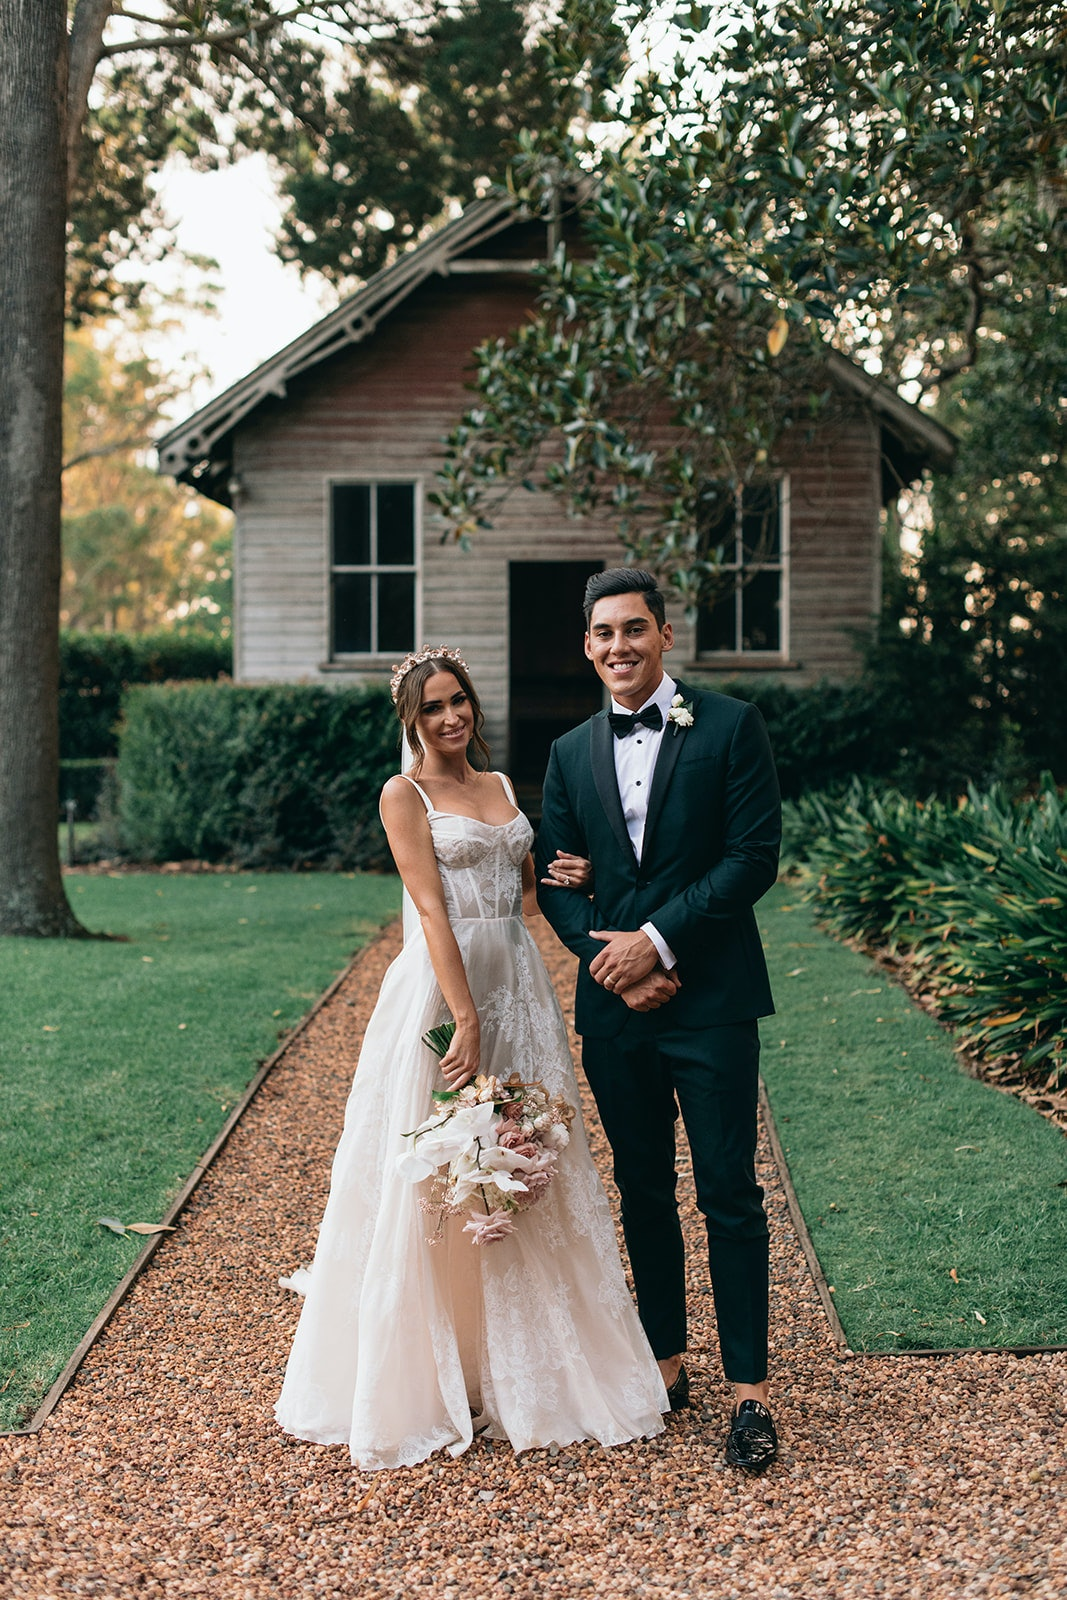 Bride and Groom standing in front of school house